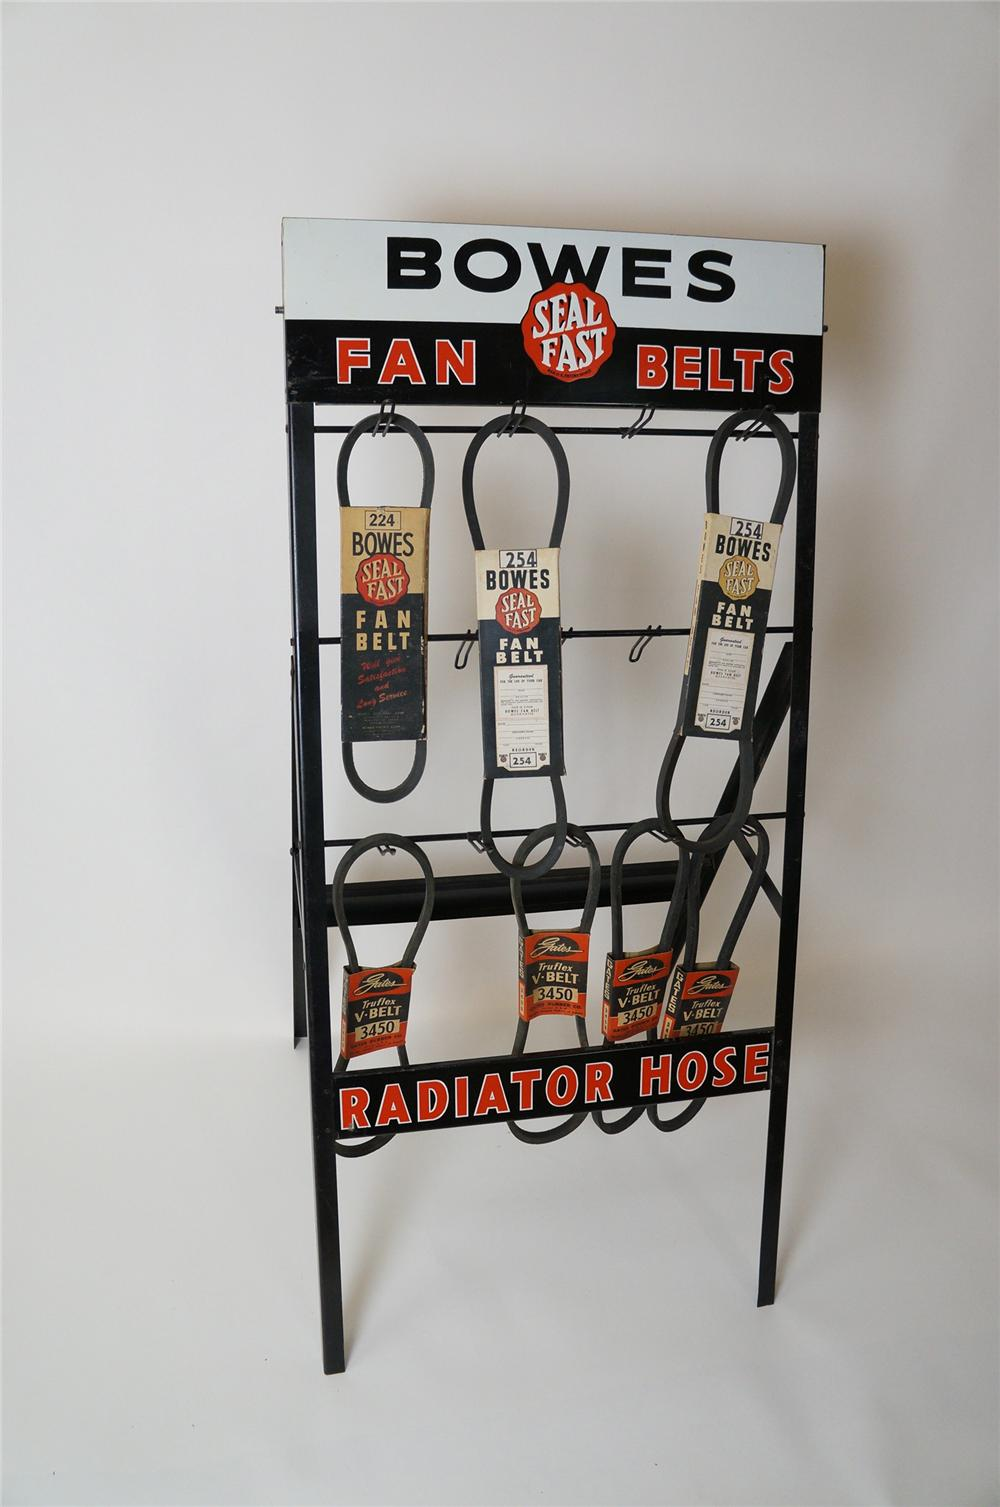 1940s Bowes Seal Fast Fan Belts-Radiator Hose automotive garage metal display with original belts attached. - Front 3/4 - 139634